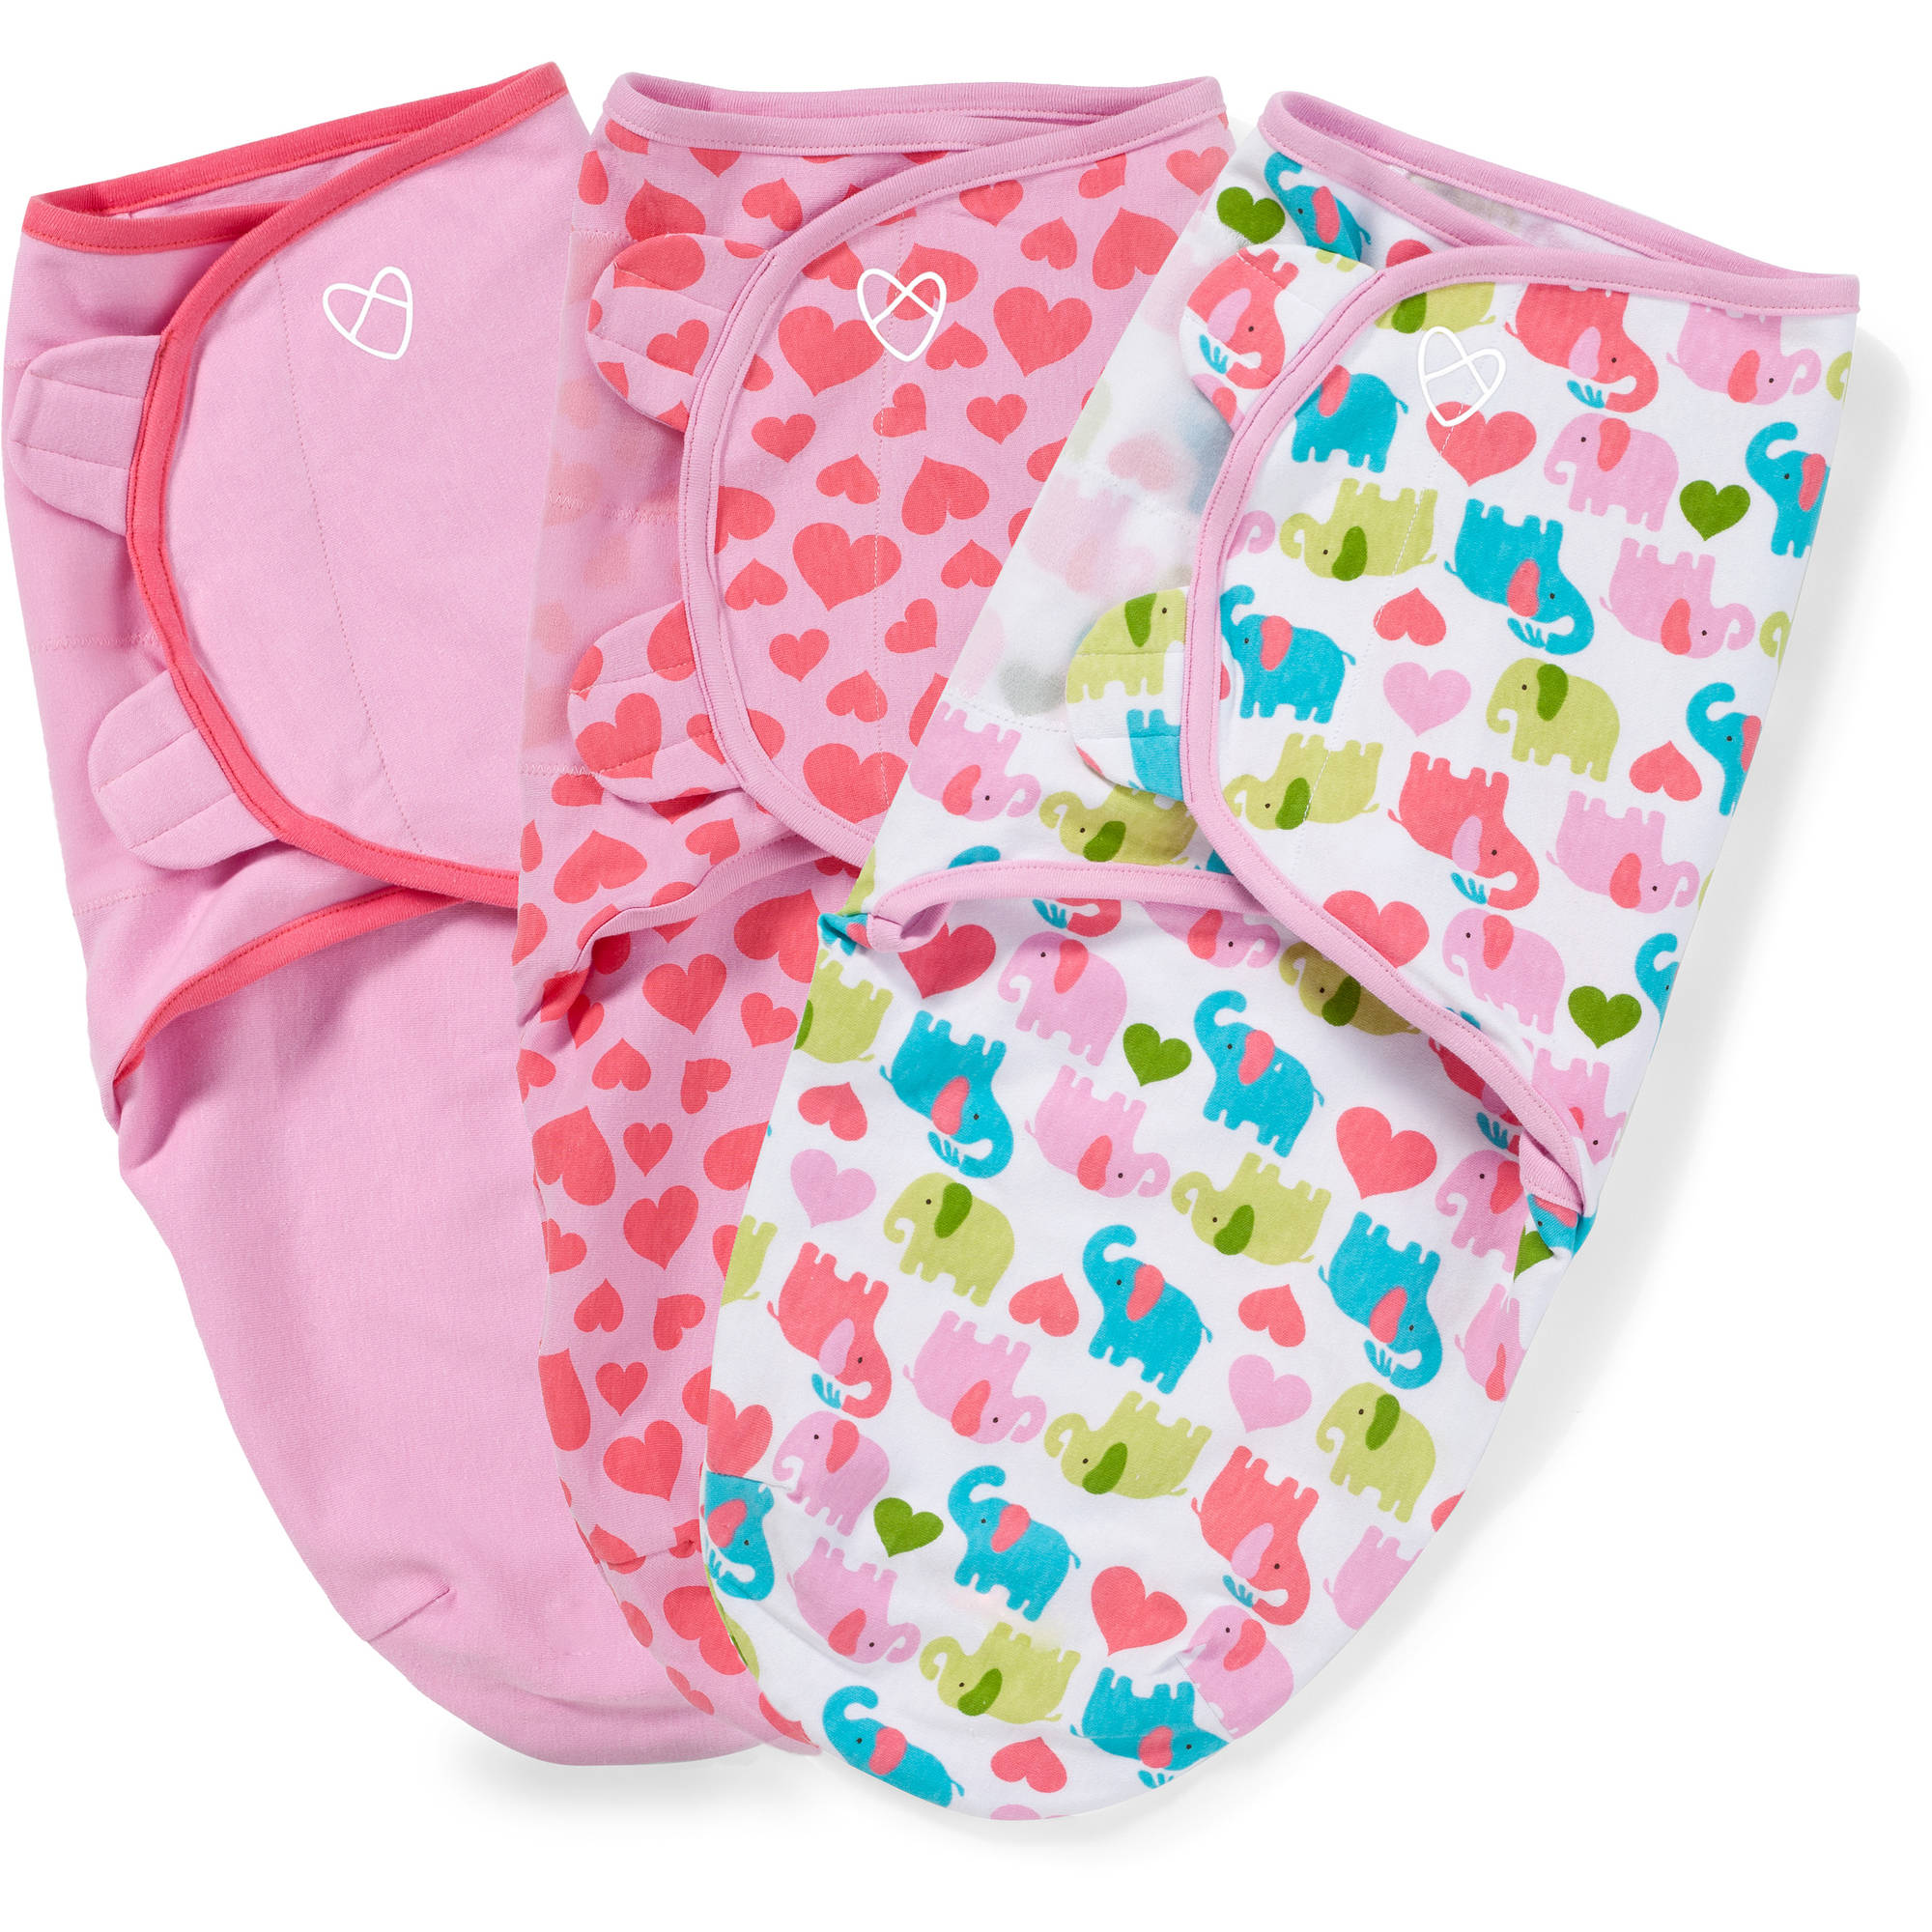 SwaddleMe Original Swaddle, 3-Pack, Elephant Hearts, Small